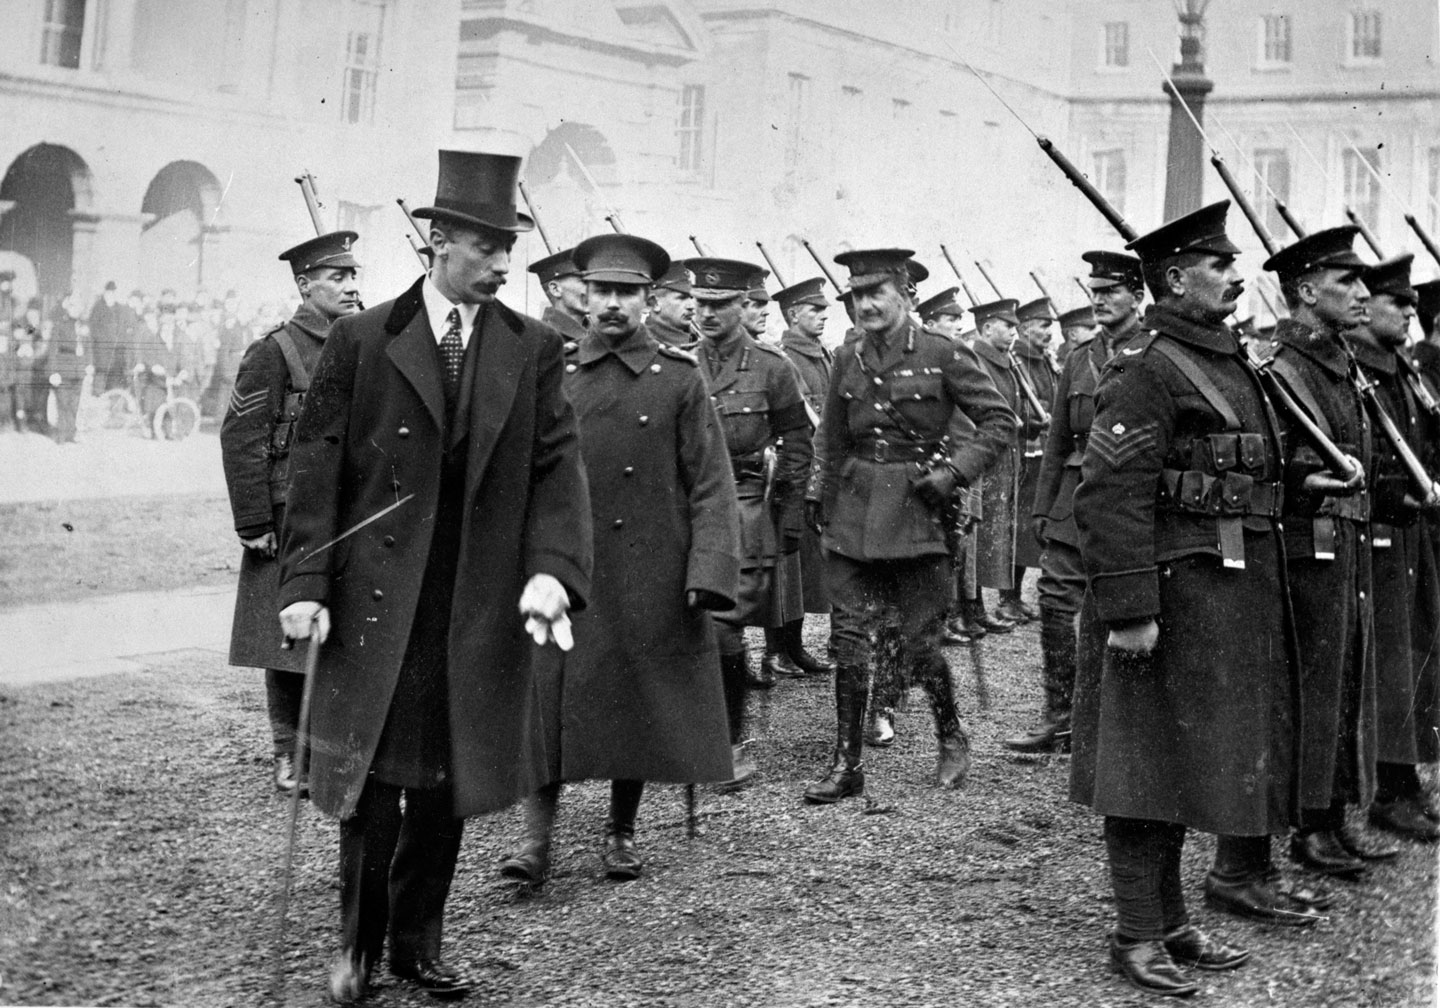 Ivor Churchill Guest, 1st Viscount Wimborne, with troops in Dublin in the aftermath the Rising. He has resigned his post as Viceroy in Ireland citing official blunders in the handling of the situation.